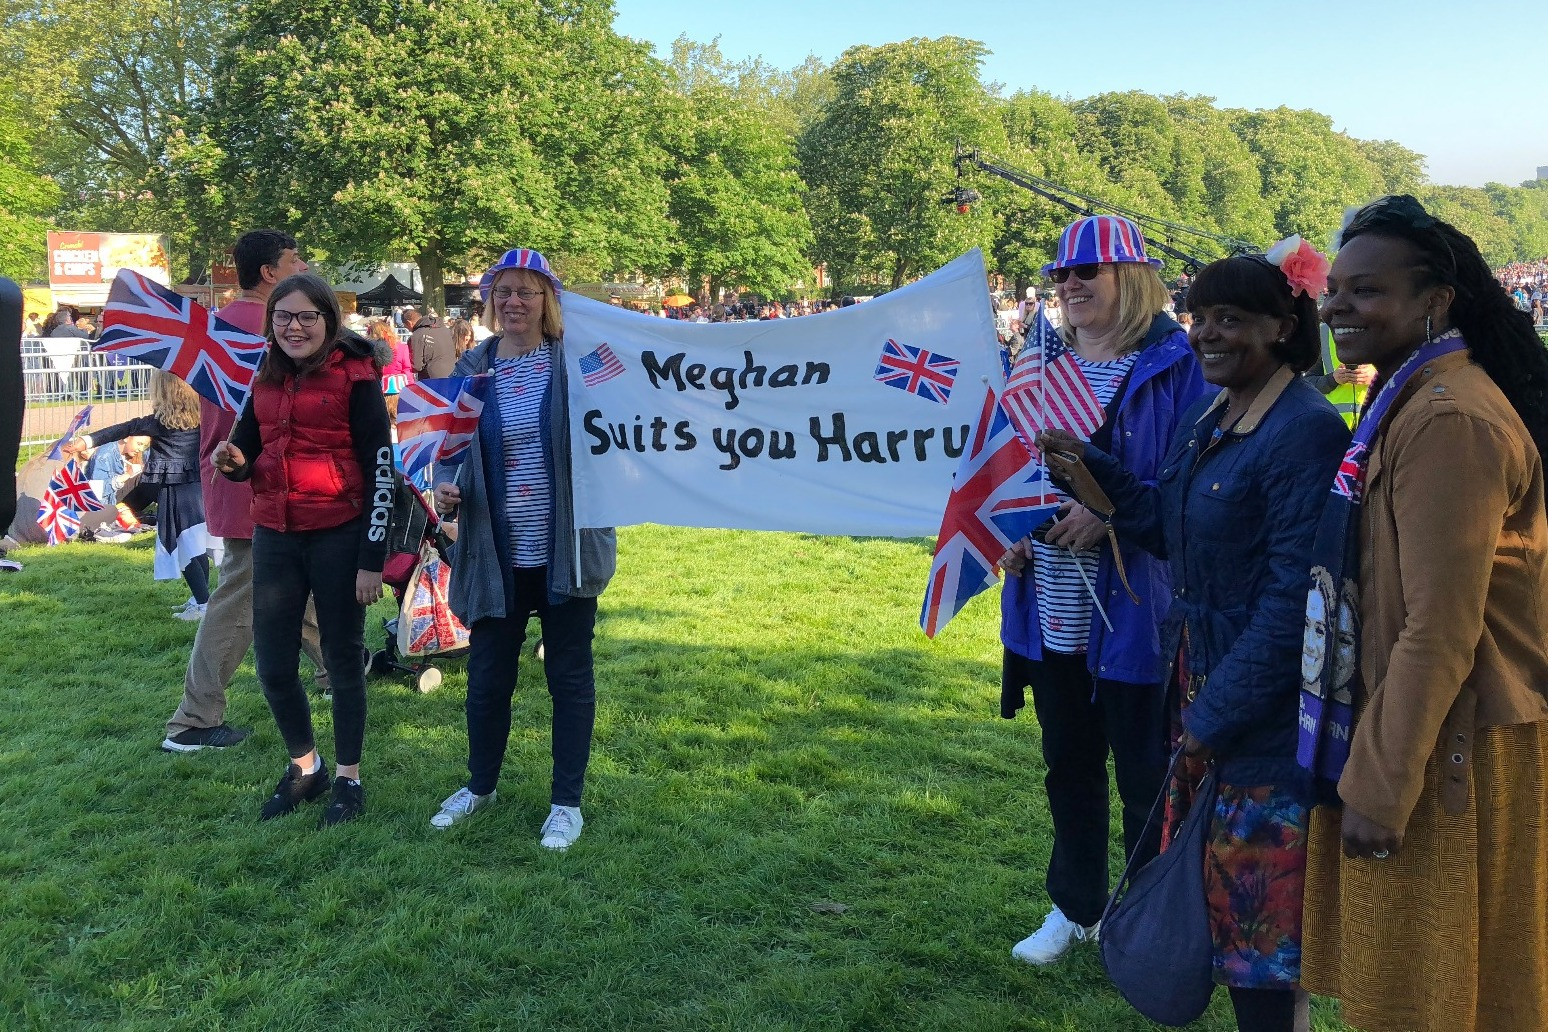 Thousands gather for the Royal Wedding in Windsor